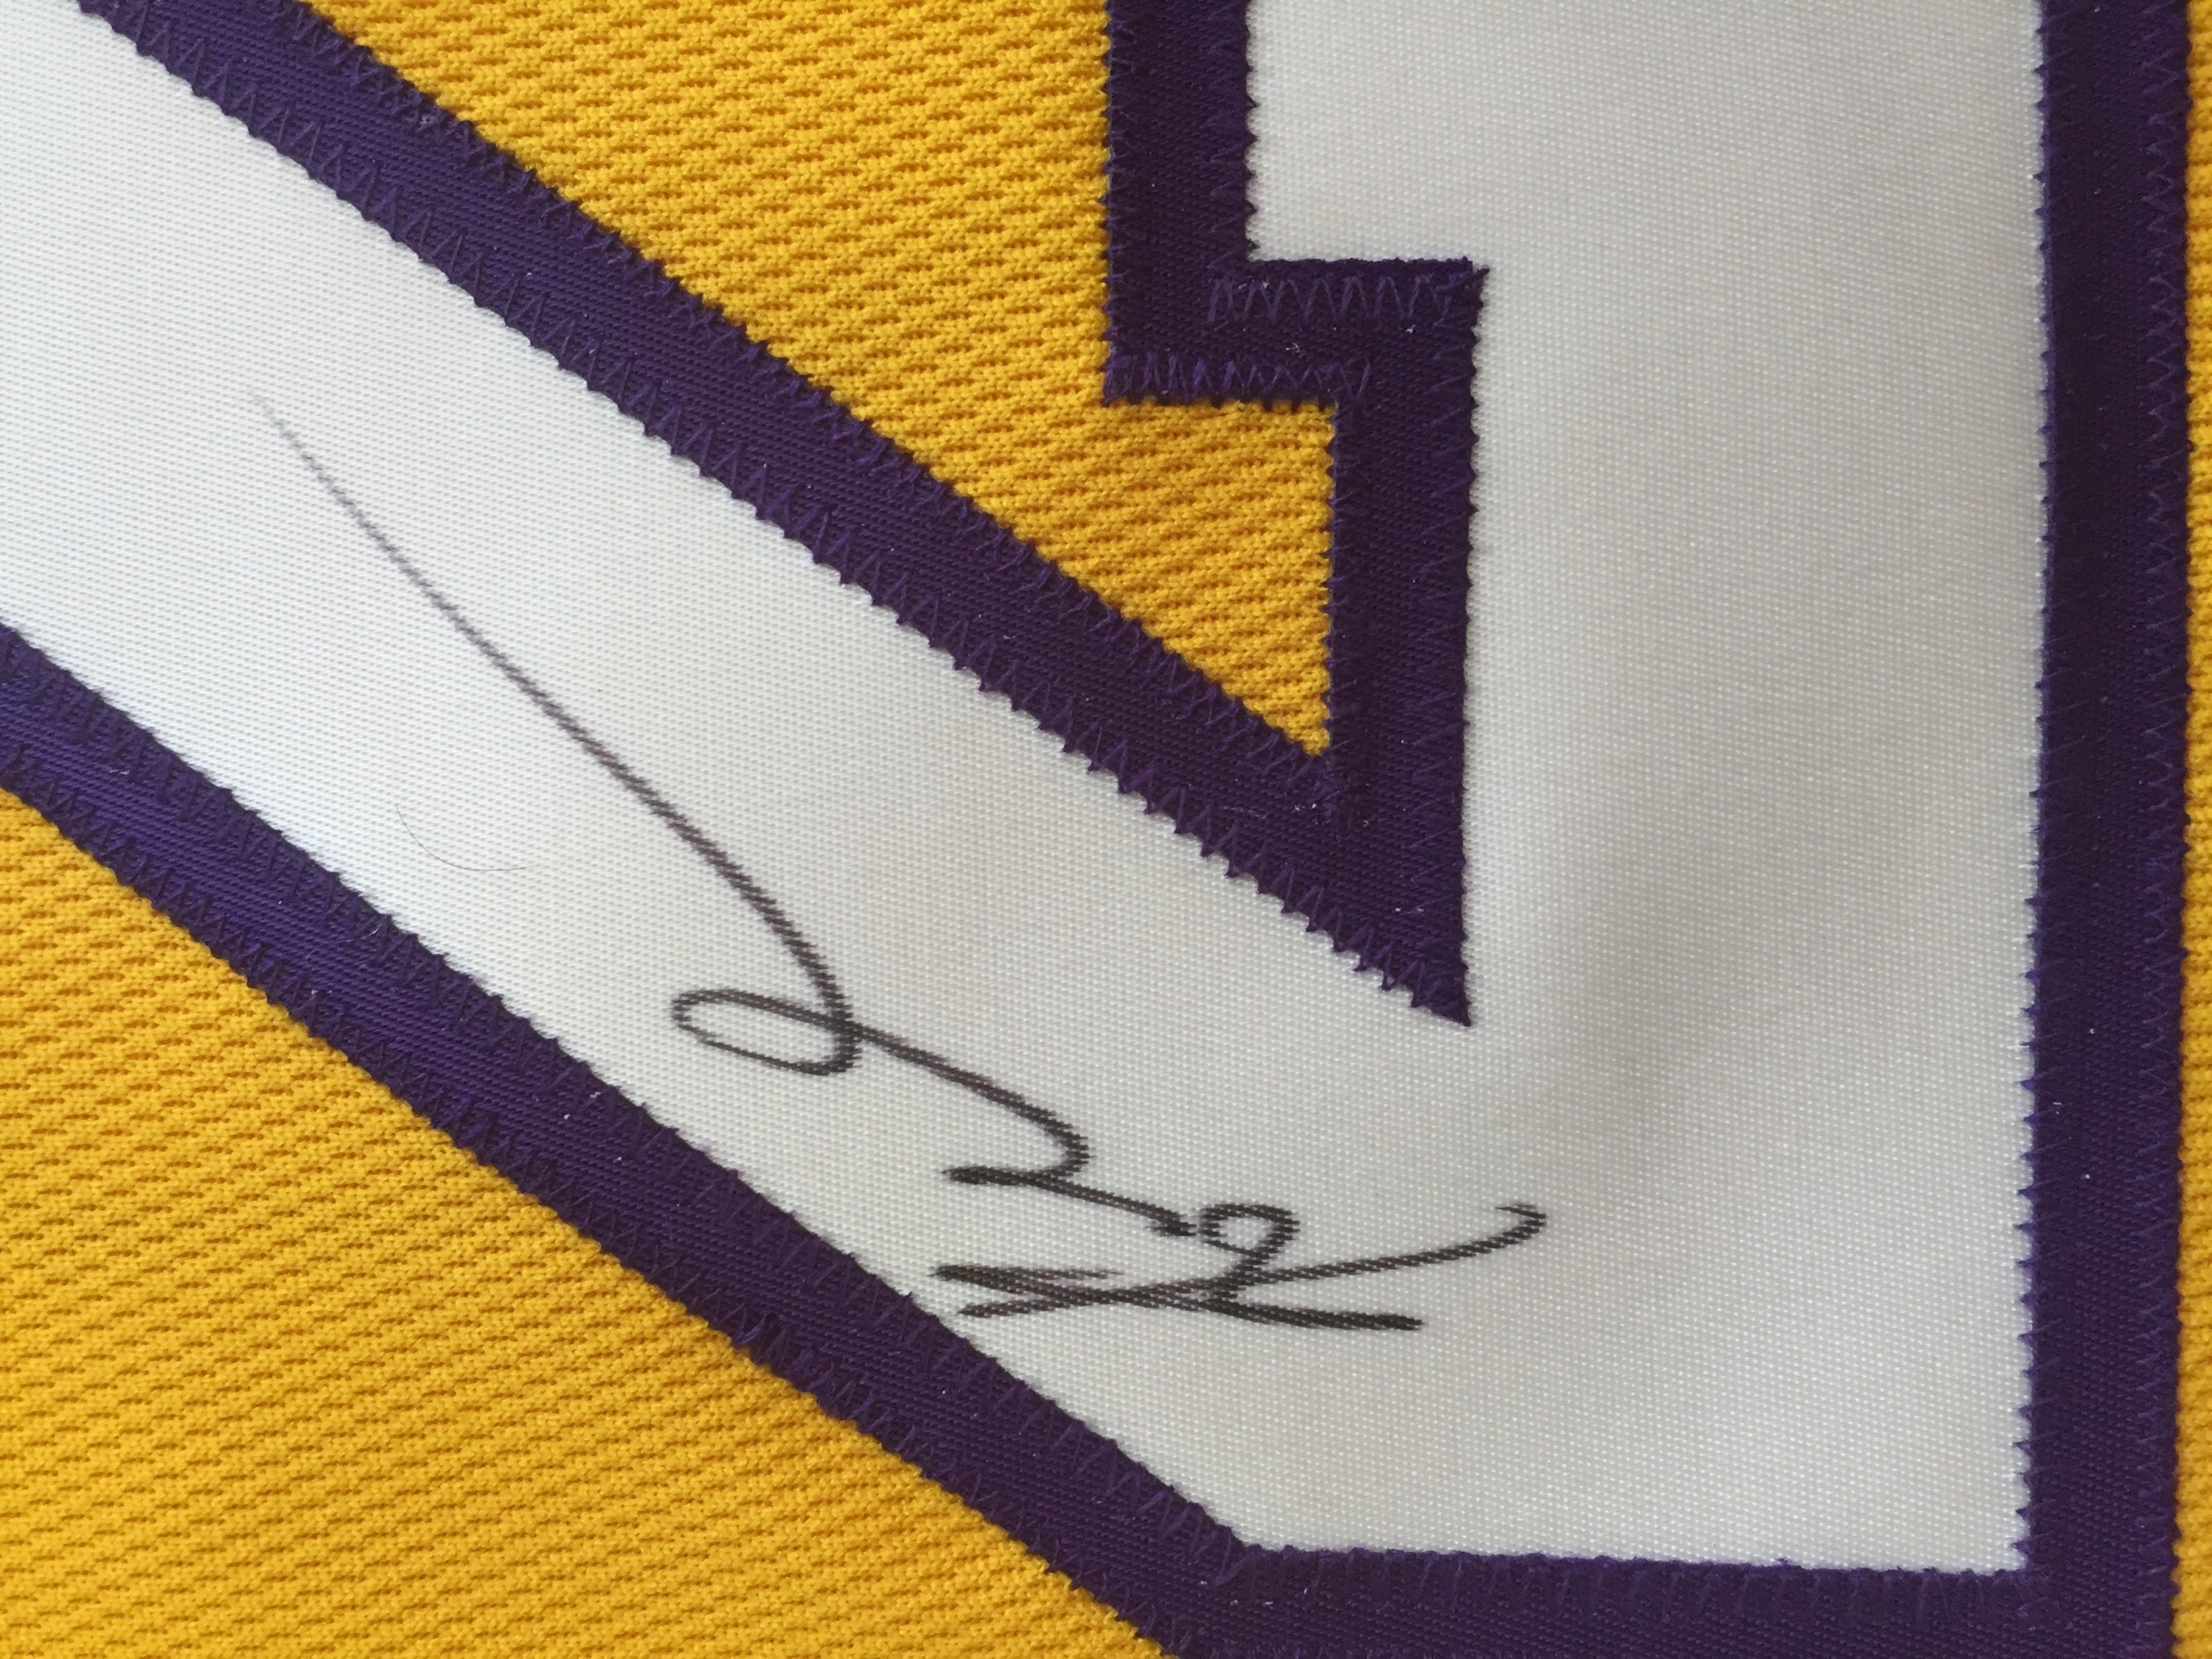 Authentic Los Angeles Lakers Jersey Signed by Kobe Bryant. Your bid  supported  The Heads Up Youth Foundation Inc. Original. Original. Original.  Original 2fd8b253c